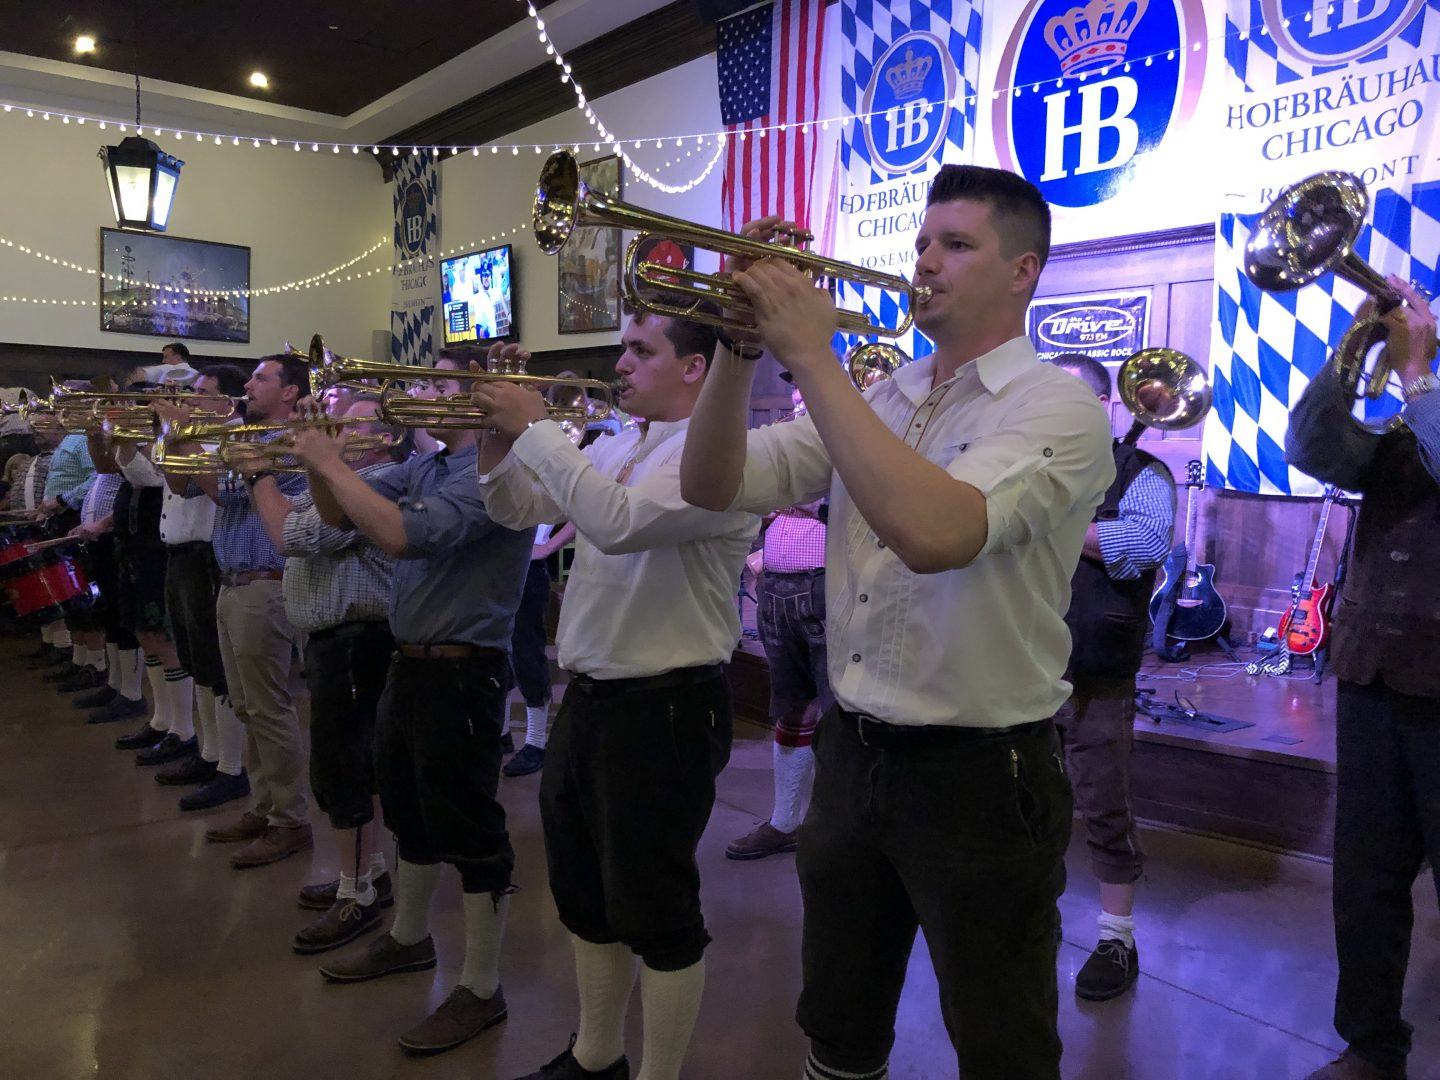 Hofbrauhaus entertainment